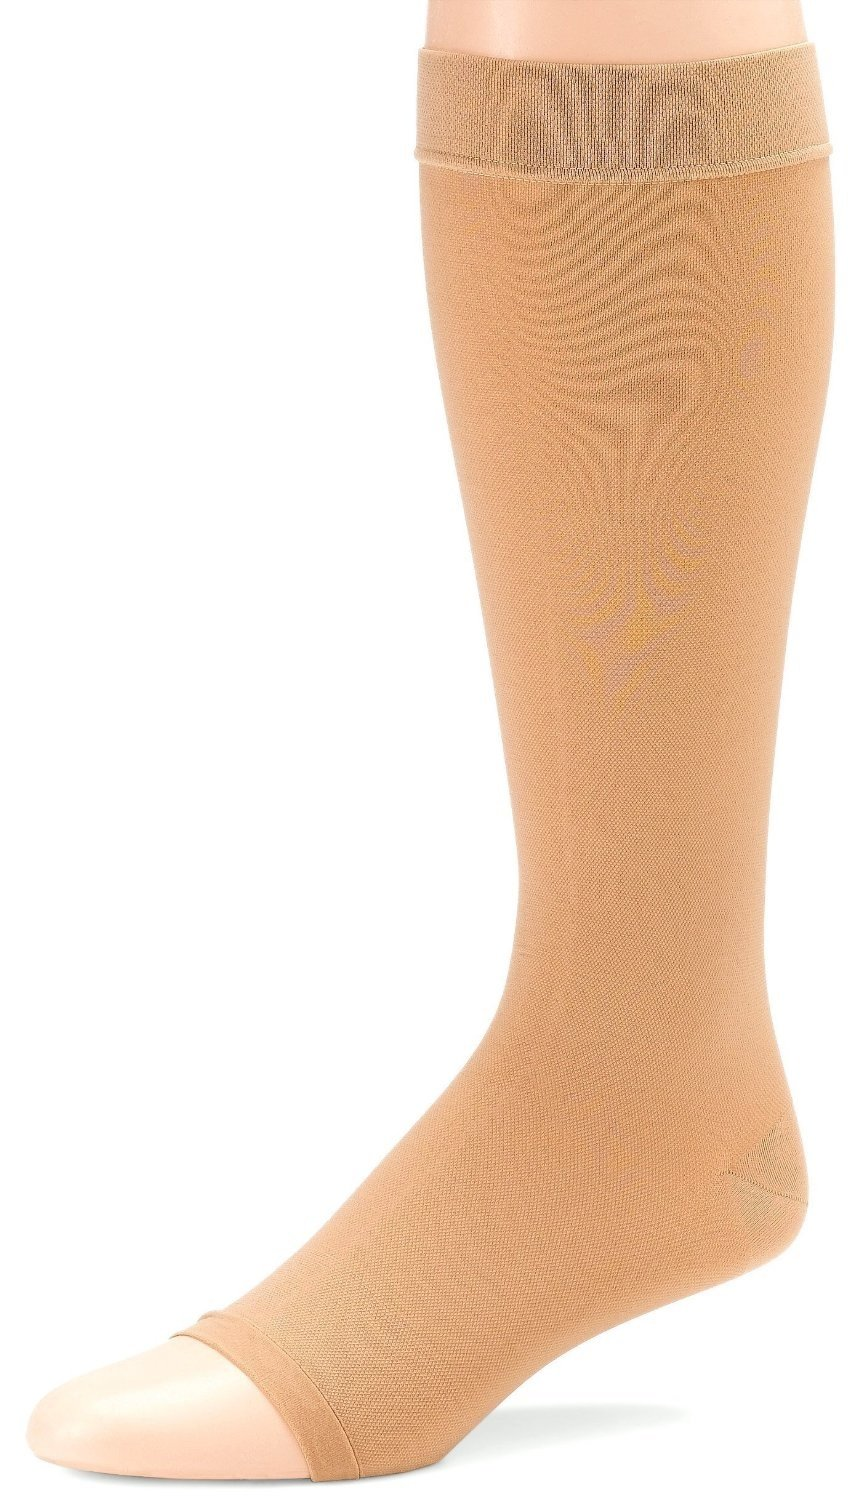 Futuro Therapeutic Support Knee High, Large, Beige, Firm, Open Toe-Reinforced Heel, (6 Pairs)